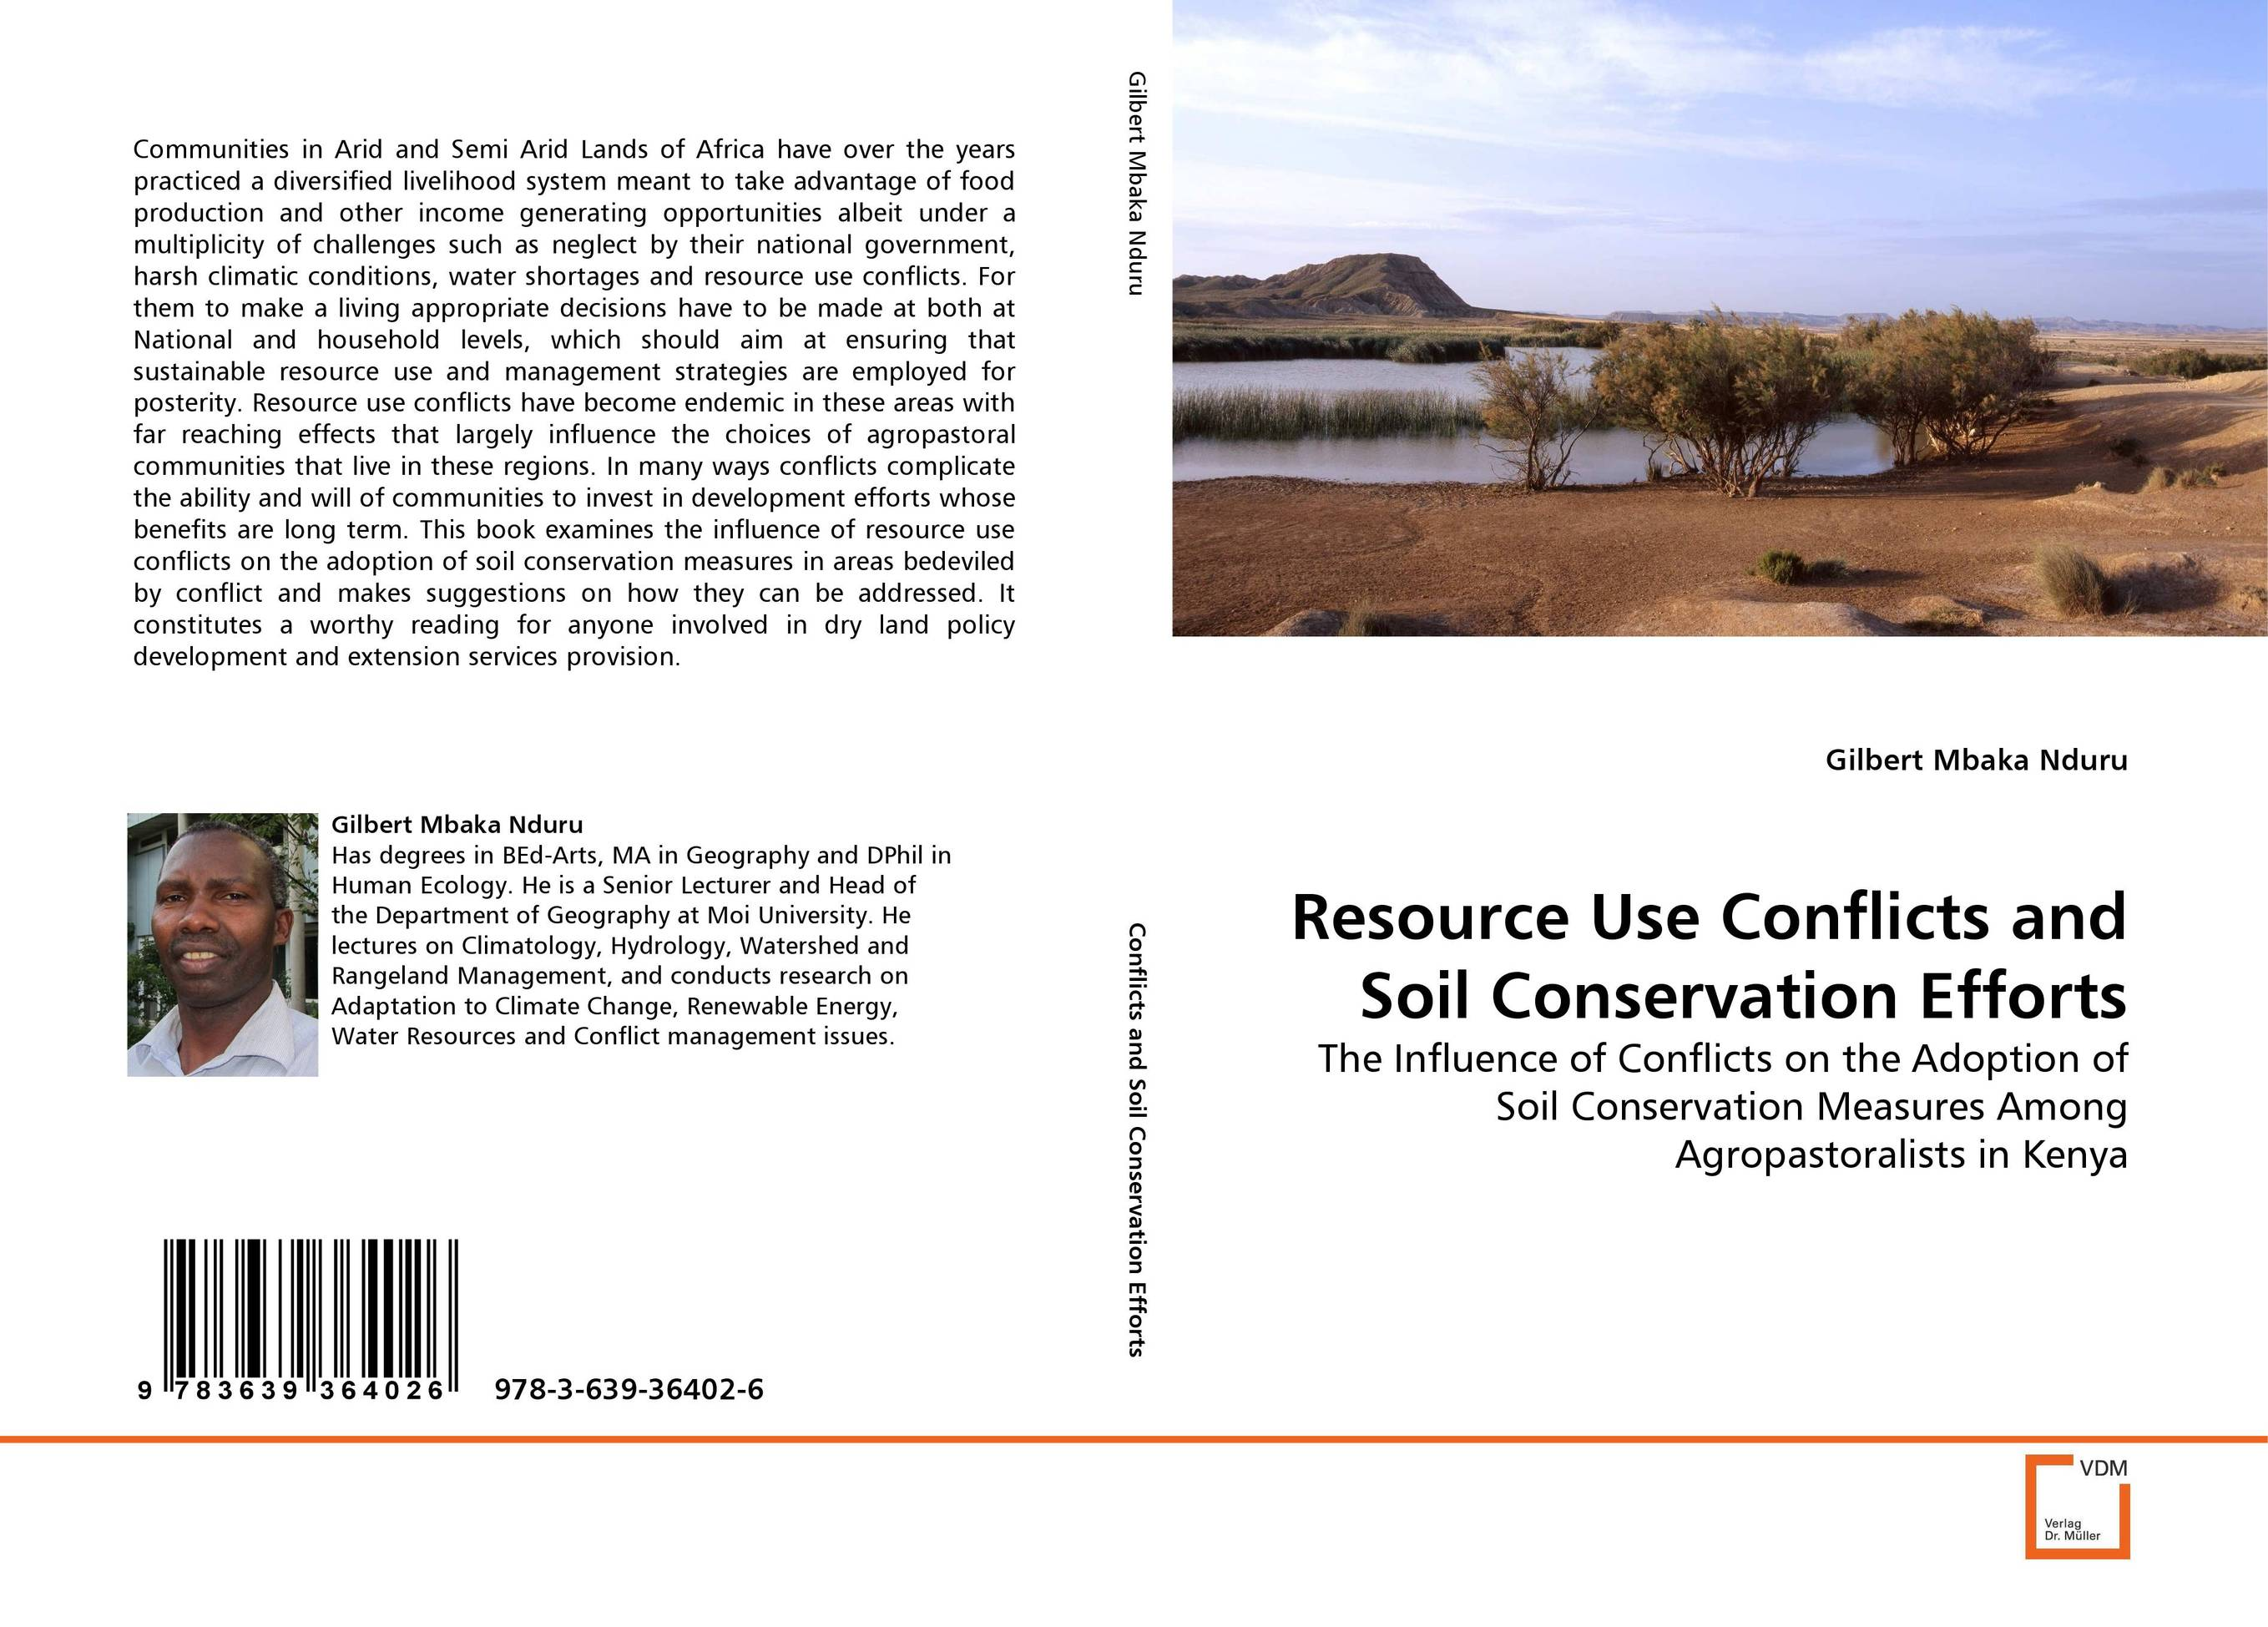 Resource Use Conflicts and Soil Conservation Efforts farm level adoption of water system innovations in semi arid areas